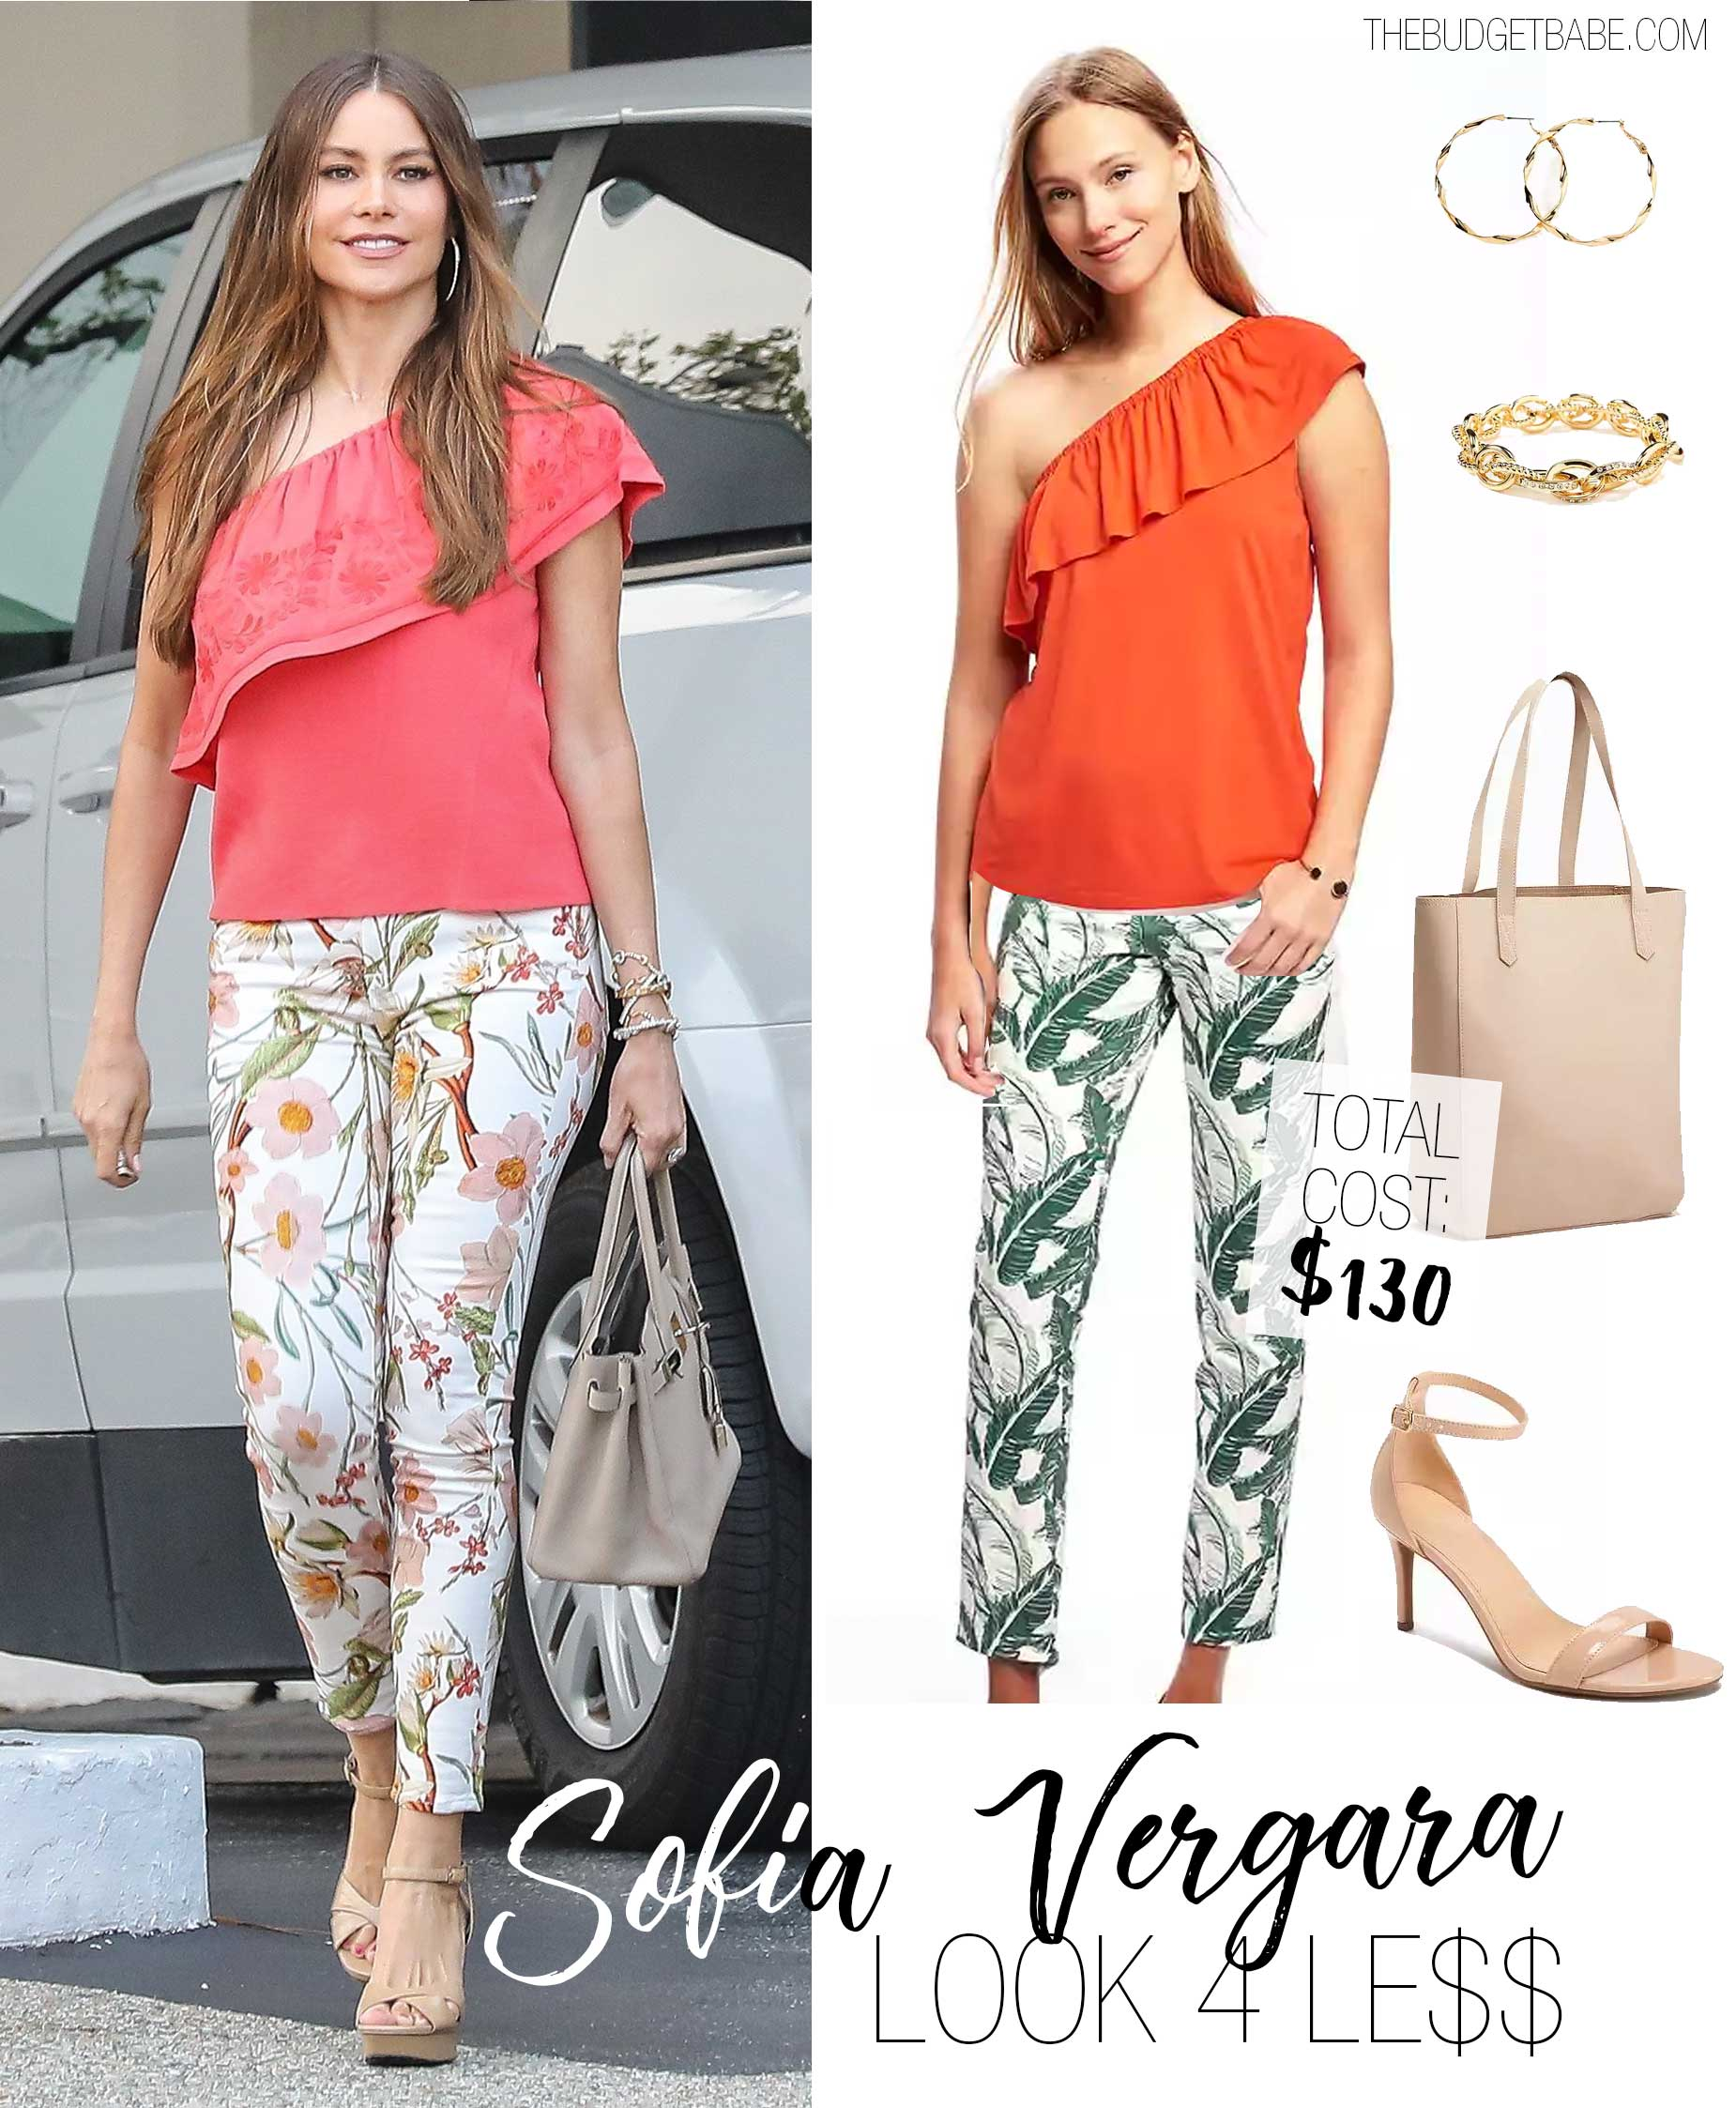 Sofia Vergara wears a one shoulder coral ruffle top with floral print pants and nude platform sandals.